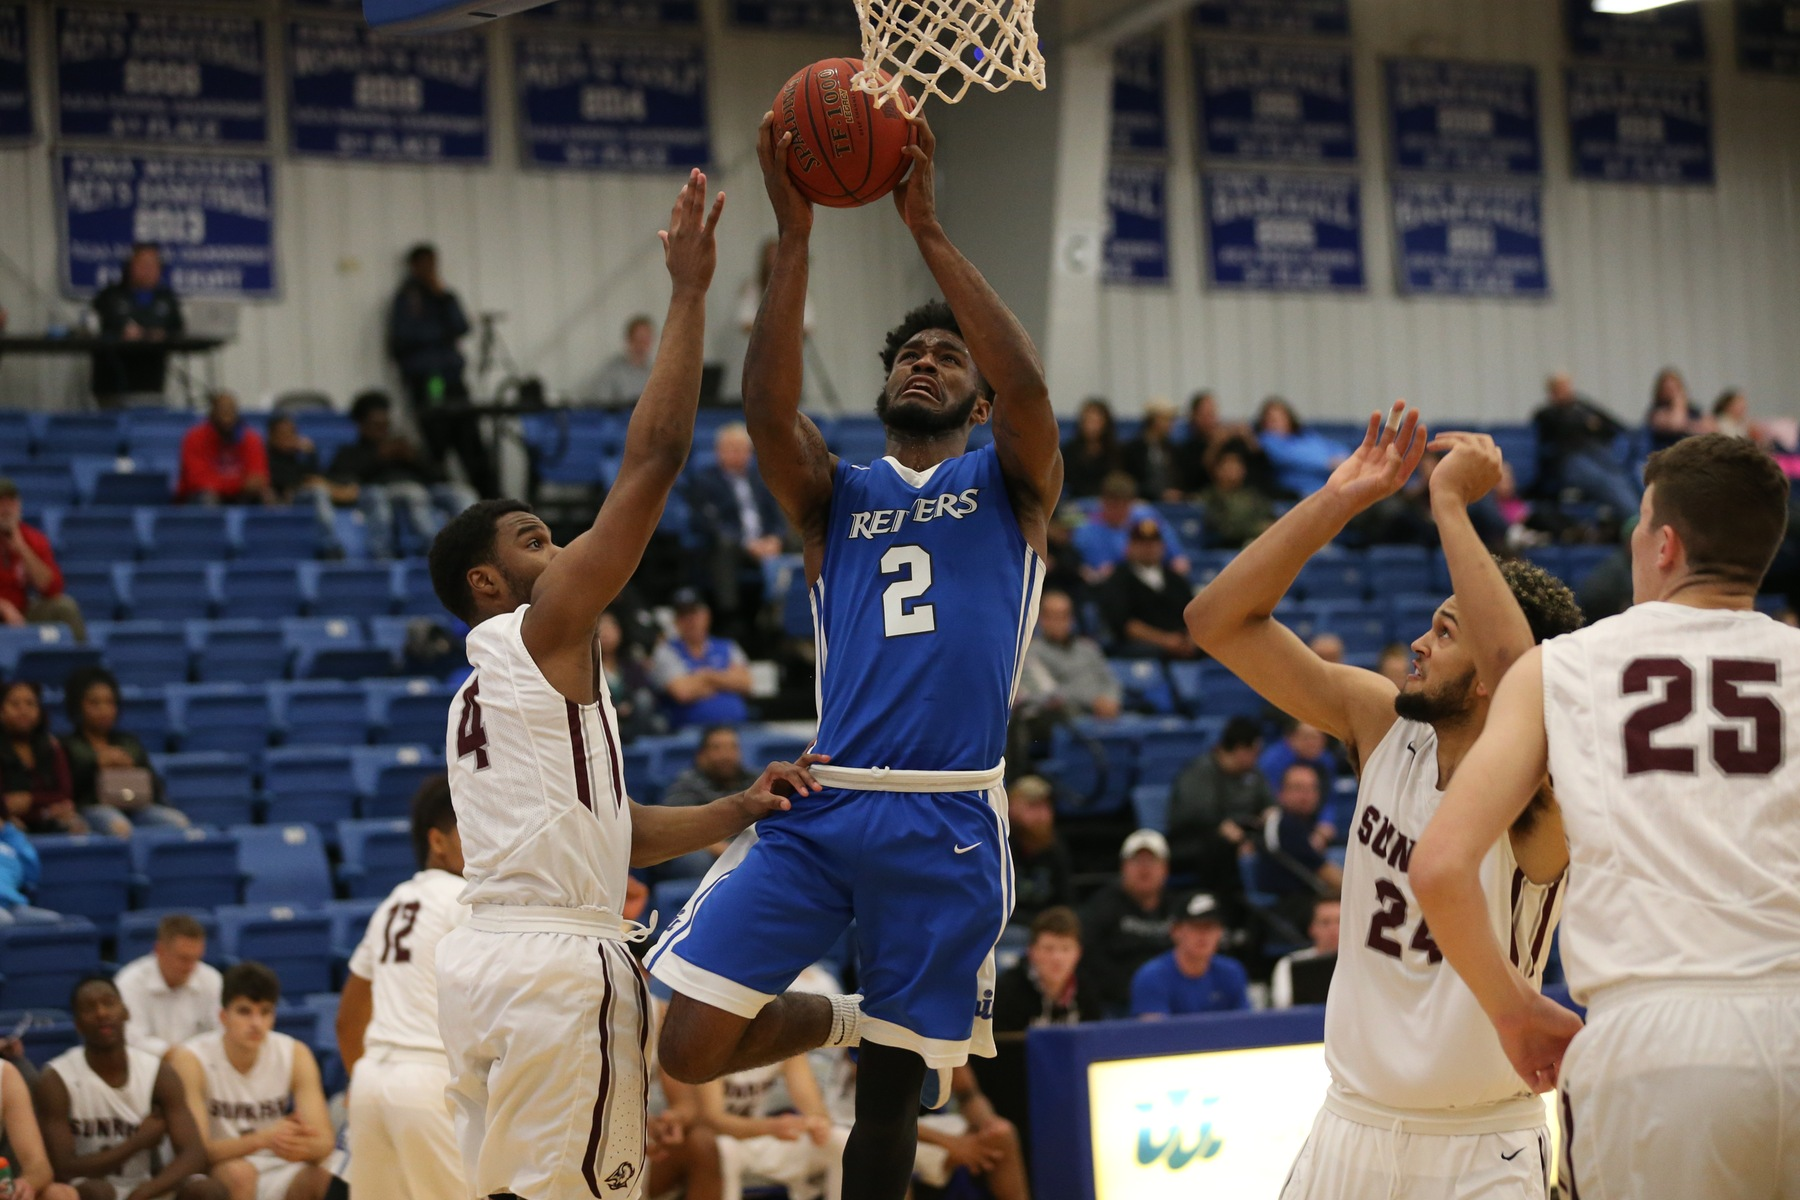 Jevon Smith scored 19 points in #21 Iowa Western's 89-63 victory over Iowa Central to open the 2018 portion of the Reivers 2017-18 men's basketball schedule.